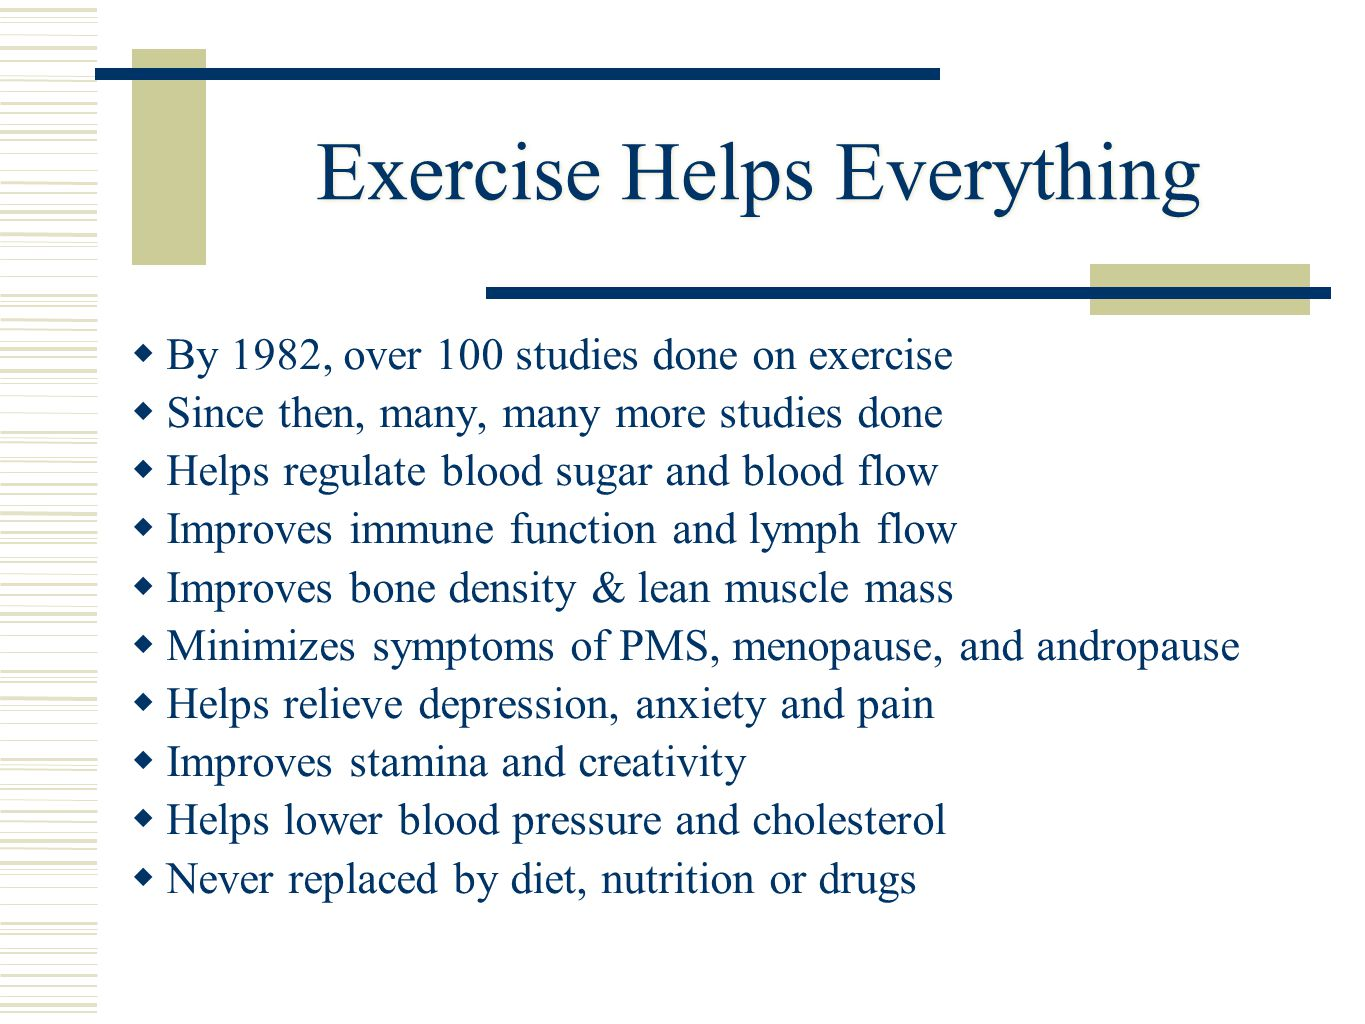 Exercise Helps Everything  By 1982, over 100 studies done on exercise  Since then, many, many more studies done  Helps regulate blood sugar and blood flow  Improves immune function and lymph flow  Improves bone density & lean muscle mass  Minimizes symptoms of PMS, menopause, and andropause  Helps relieve depression, anxiety and pain  Improves stamina and creativity  Helps lower blood pressure and cholesterol  Never replaced by diet, nutrition or drugs